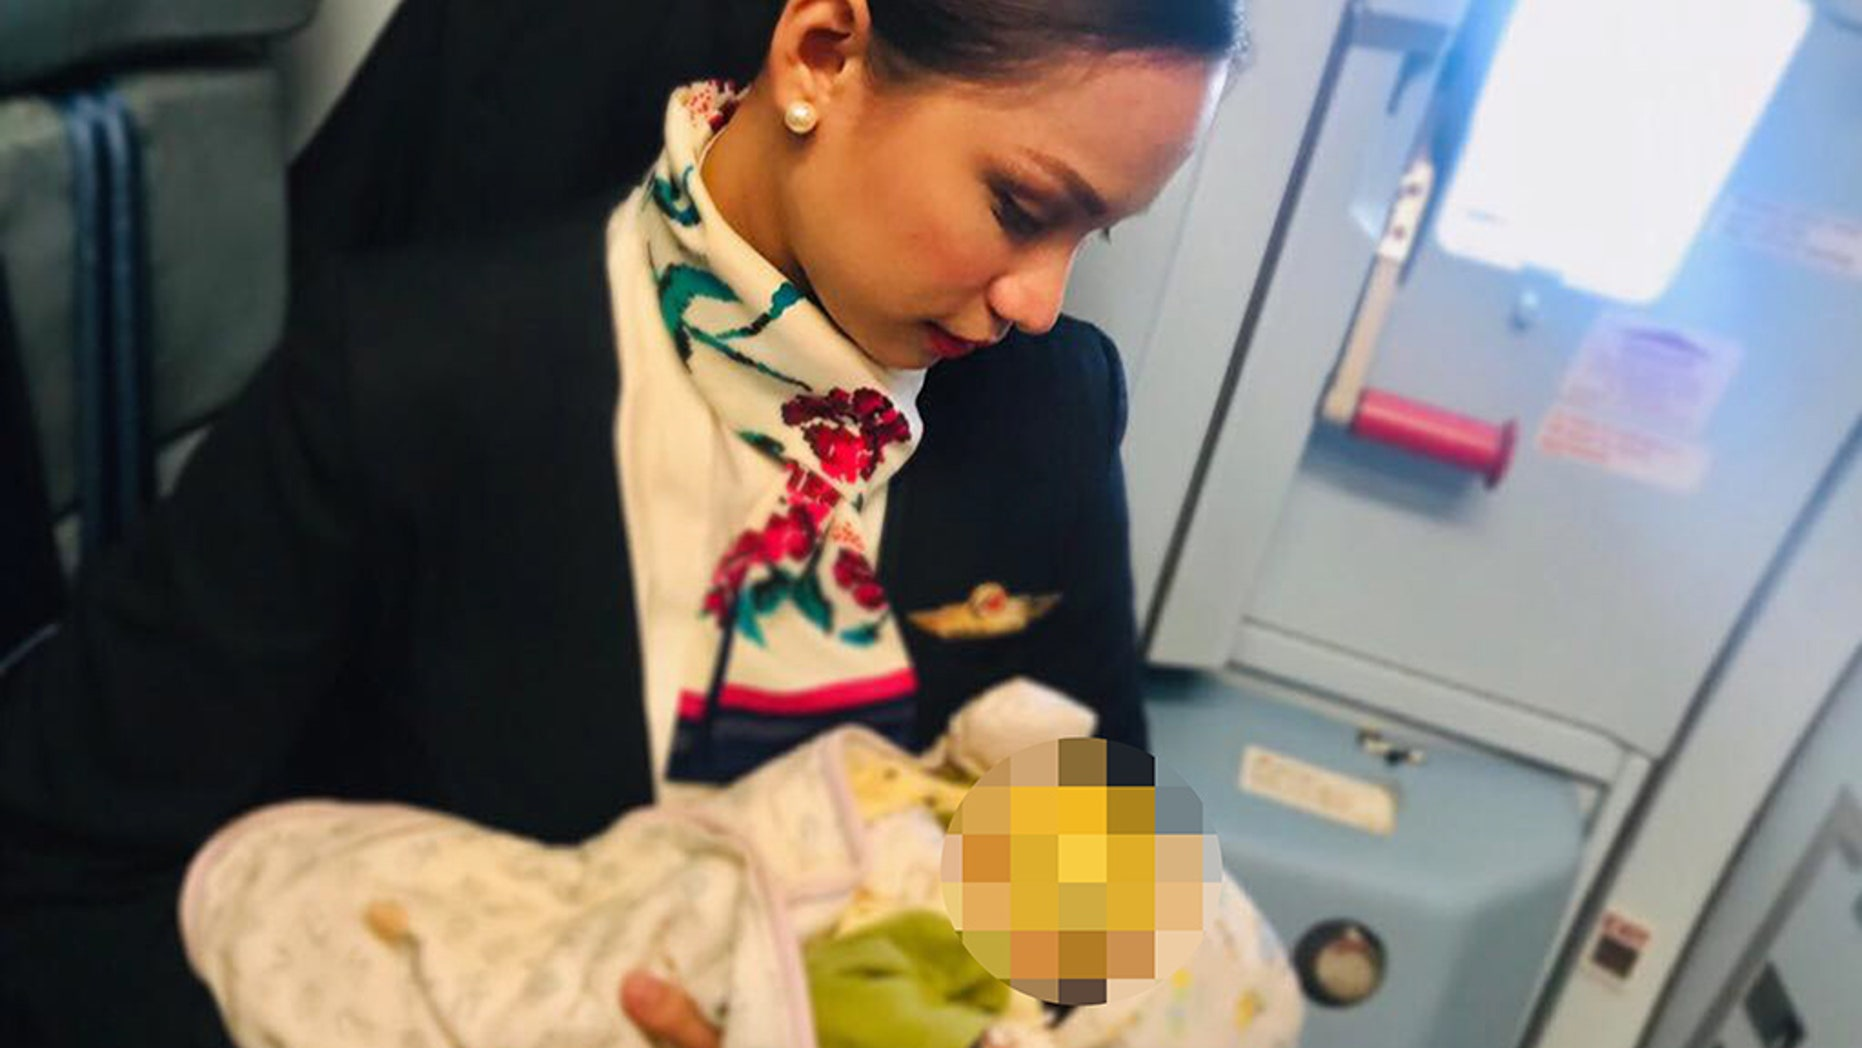 Air hostess saves the day by offering to breastfeed passenger's baby